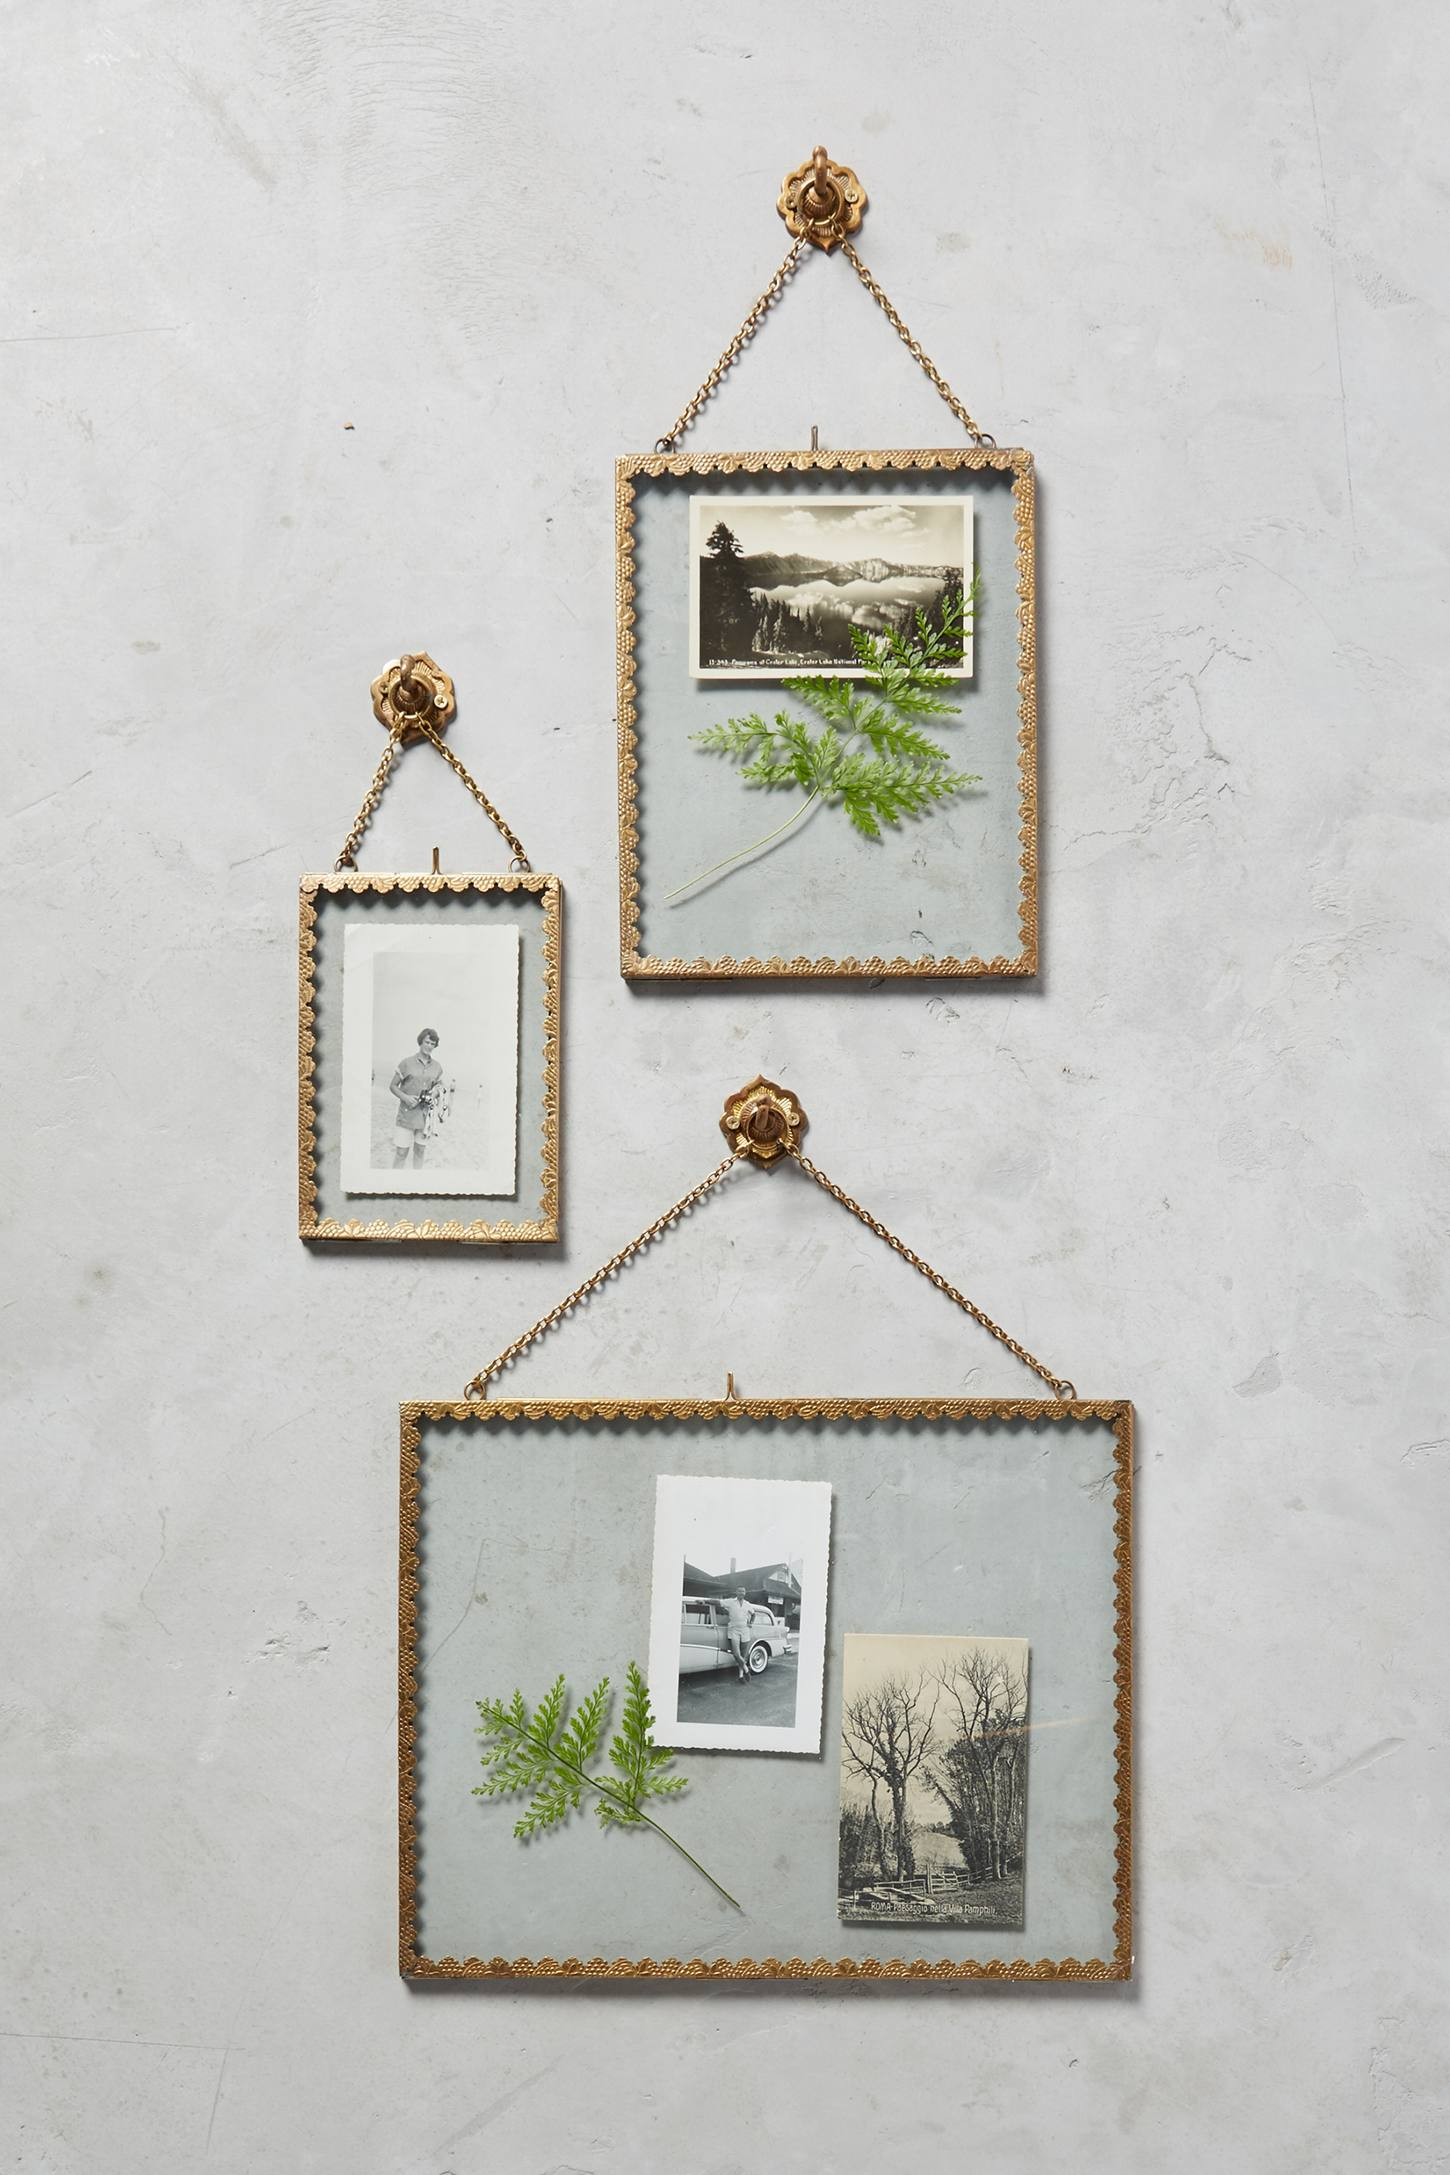 Slide View: 1: Mereille Hanging Frame